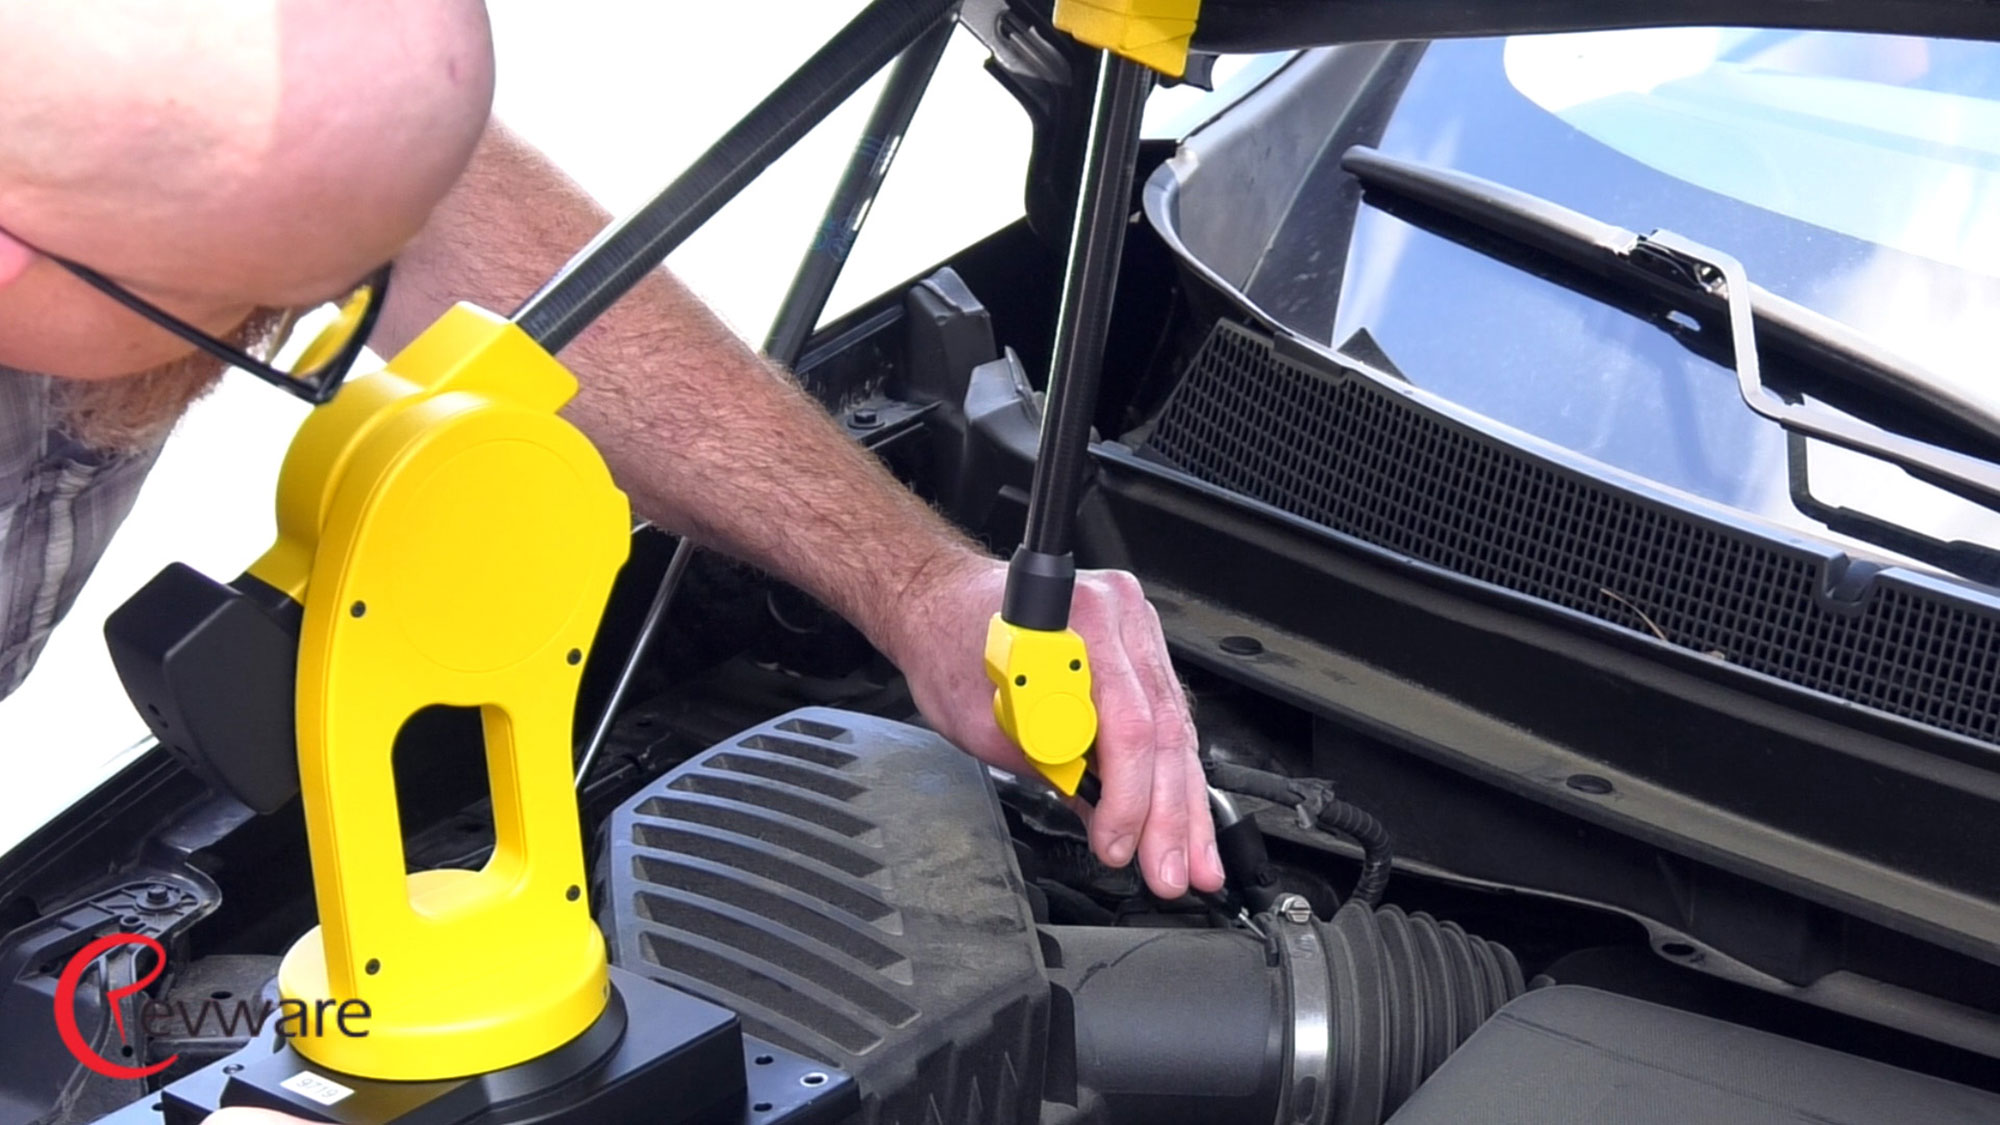 measurements-in-chevy-engine-with-microscribe-i